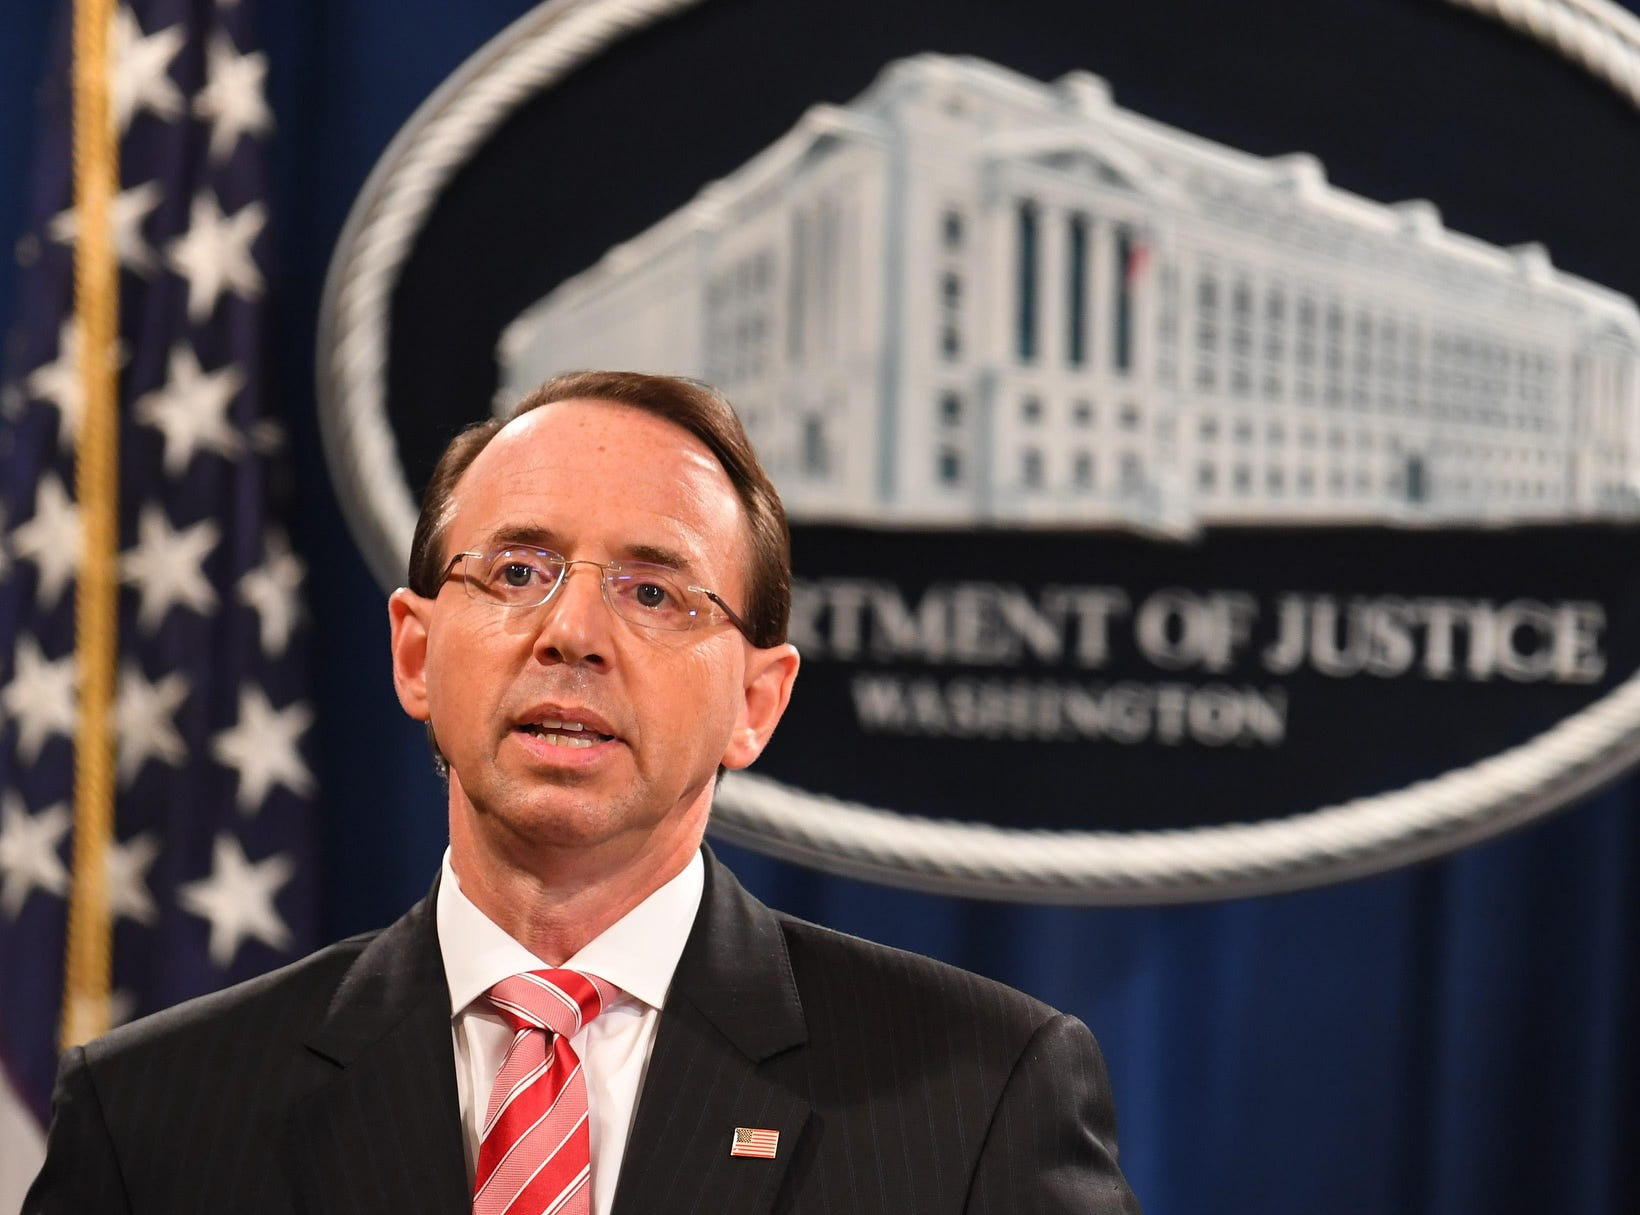 Deputy Attorney General Rod Rosenstein announced the grand jury indictment of 12 Russian intelligence officers for hacking offenses related to 2016 elections on July 13, 2018.